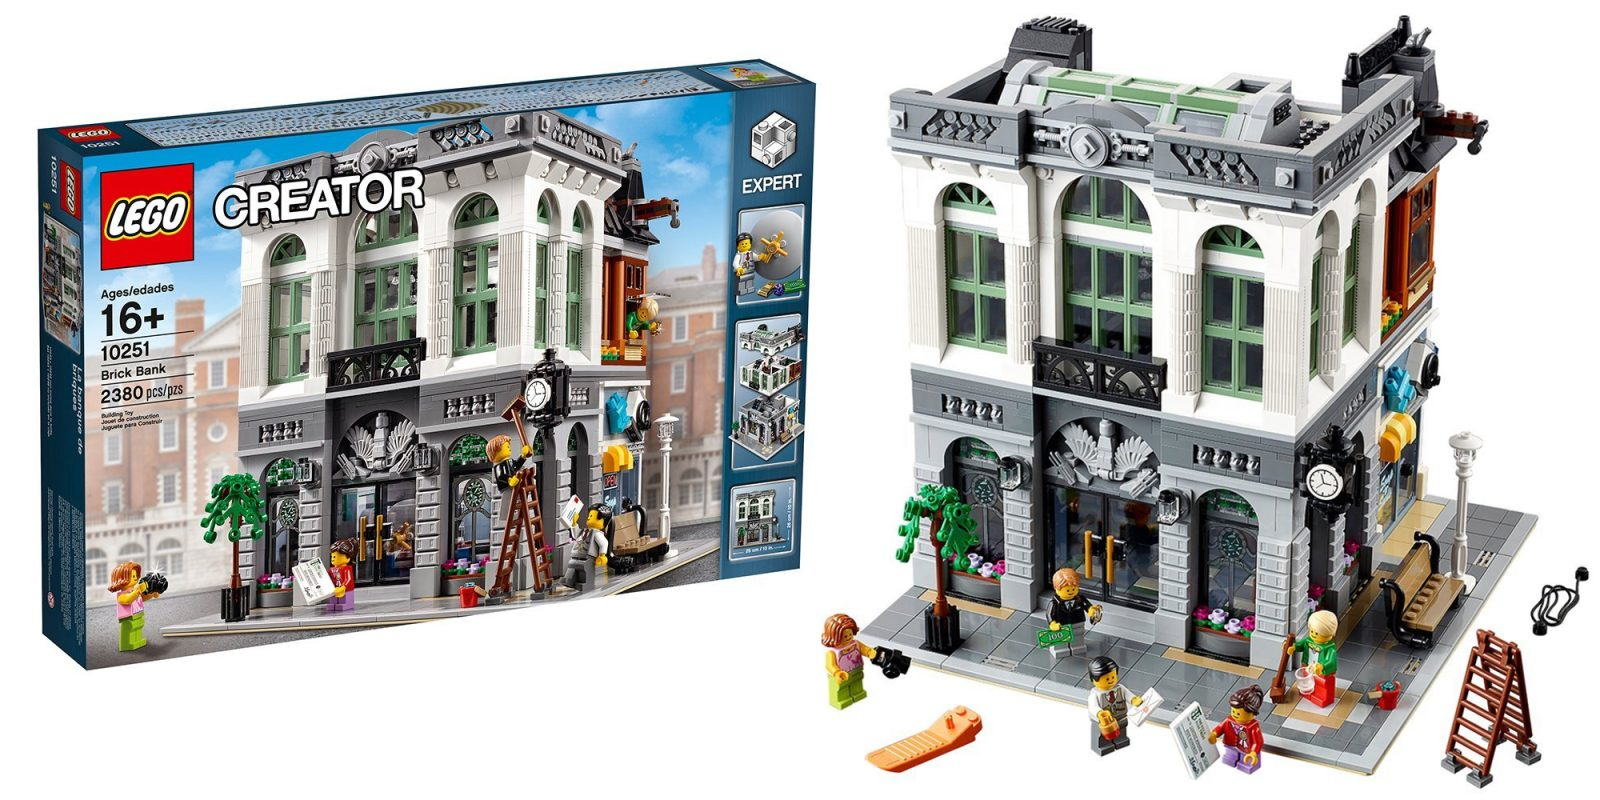 Assemble The 2380 Piece Lego Creator Expert Brick Bank At A New All